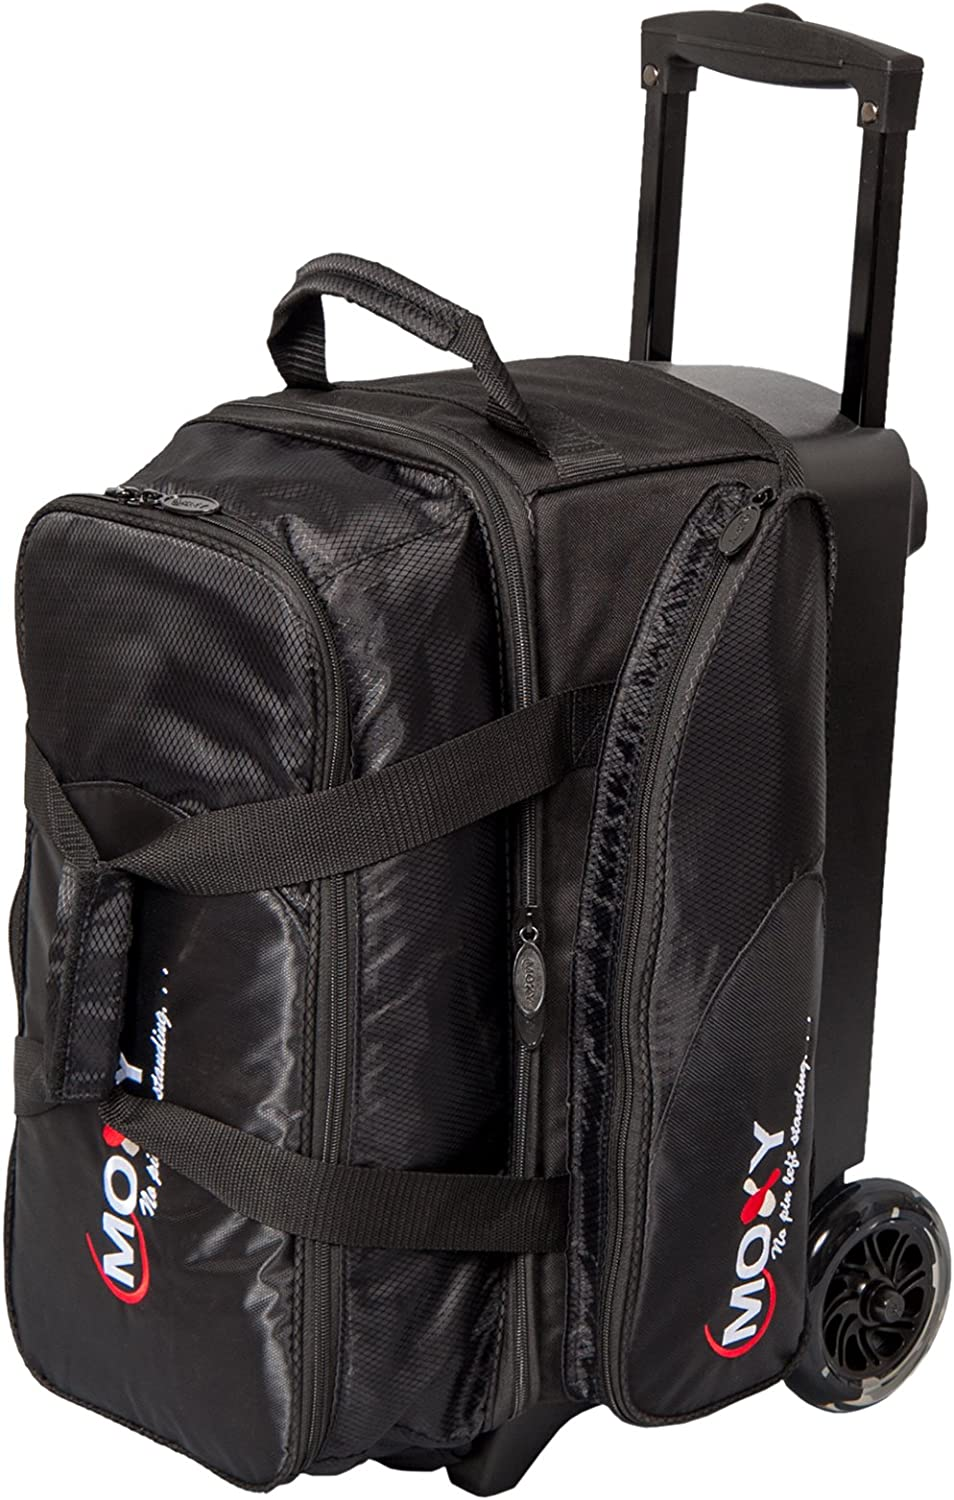 Black Moxy Bowling Products Blade Premium Double Roller Bowling Bag